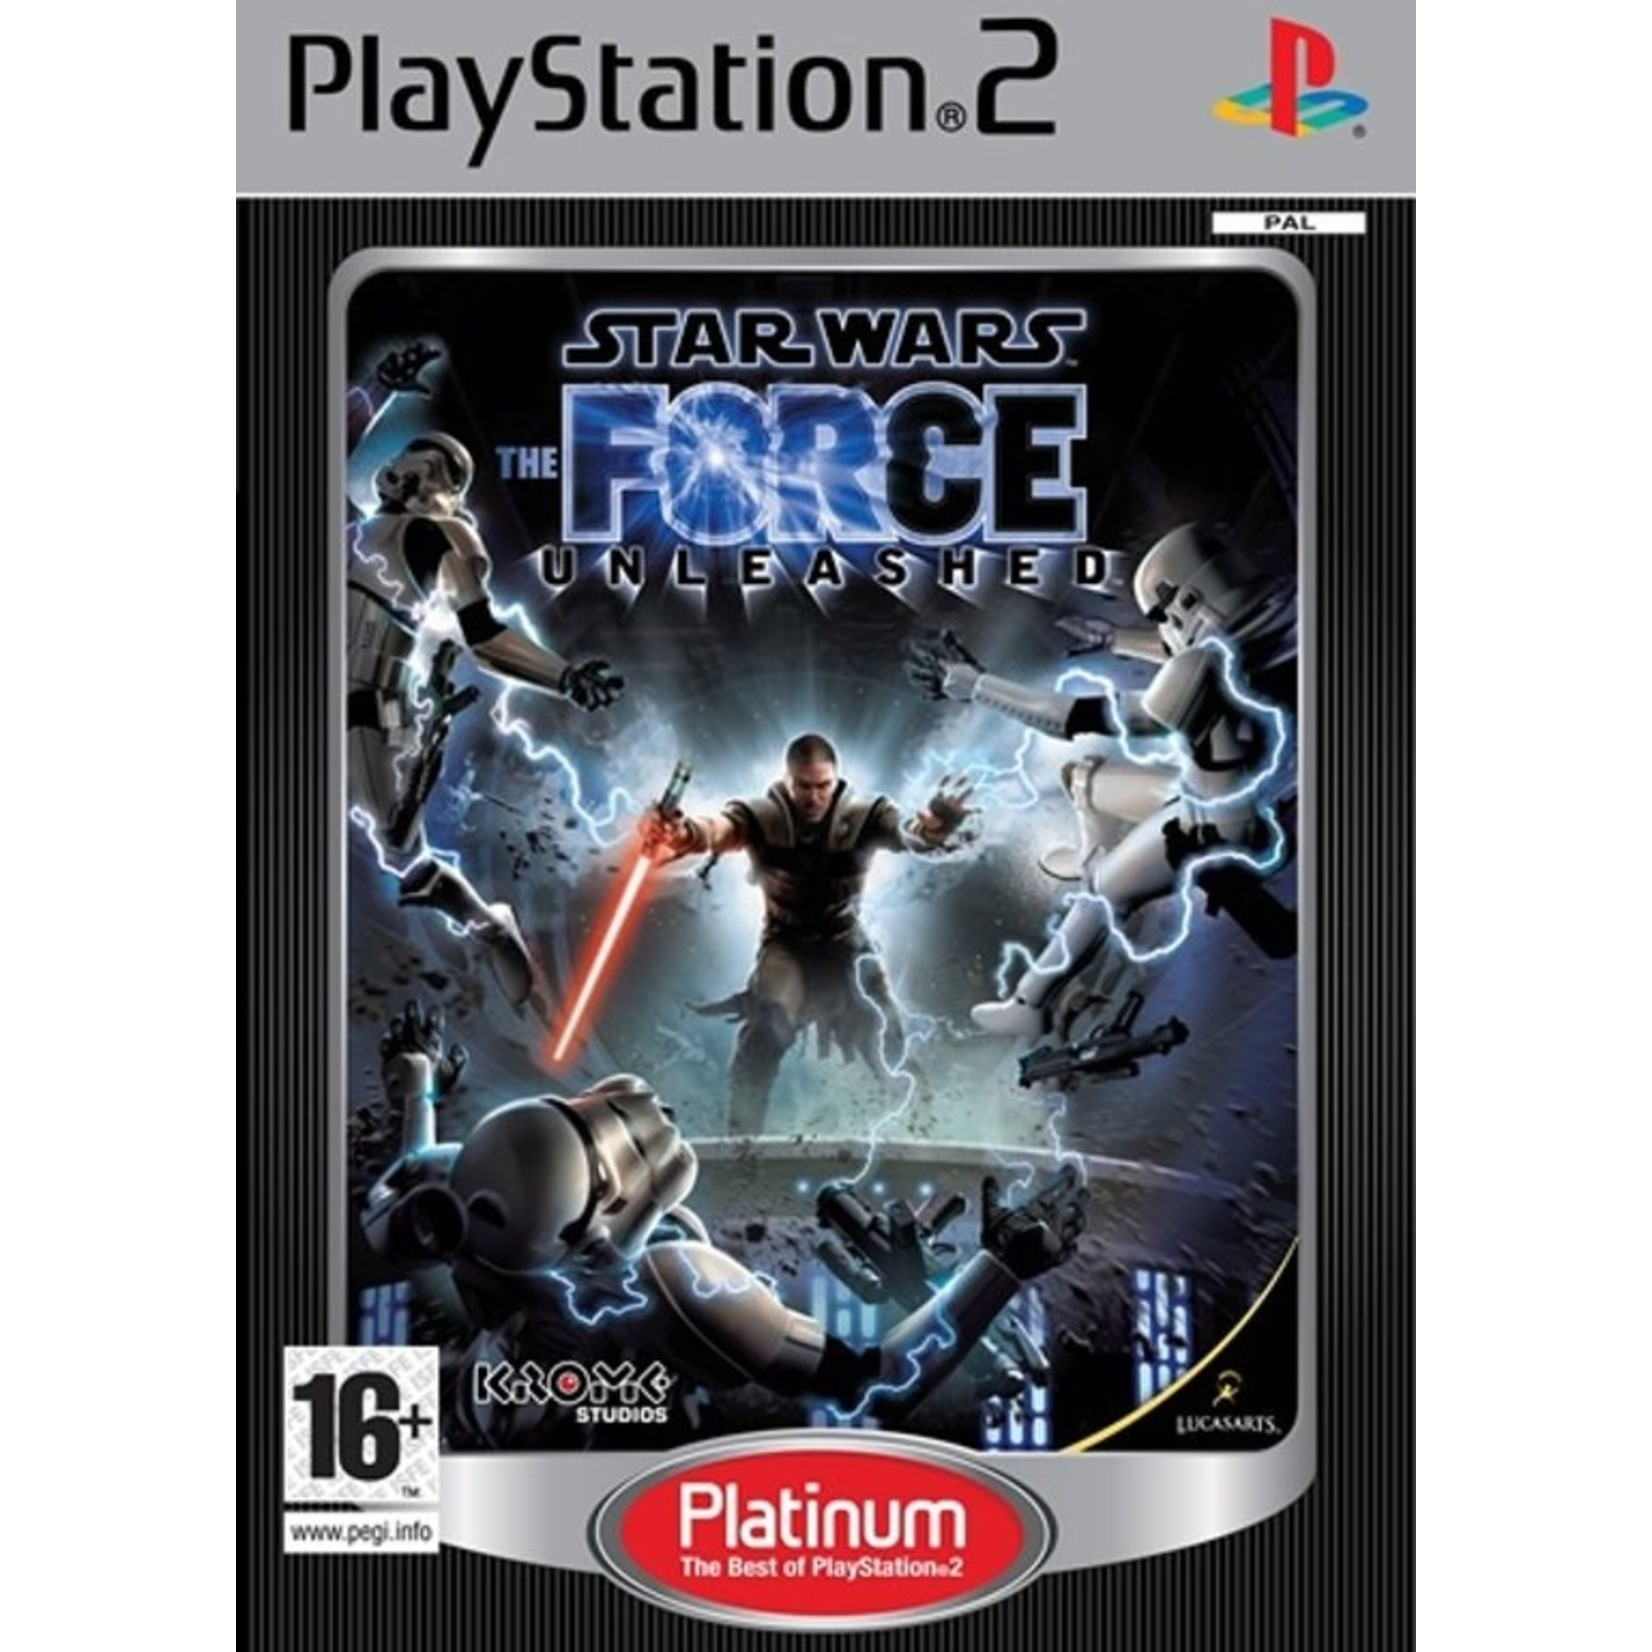 Star Wars - The Force Unleashed (Platinum)